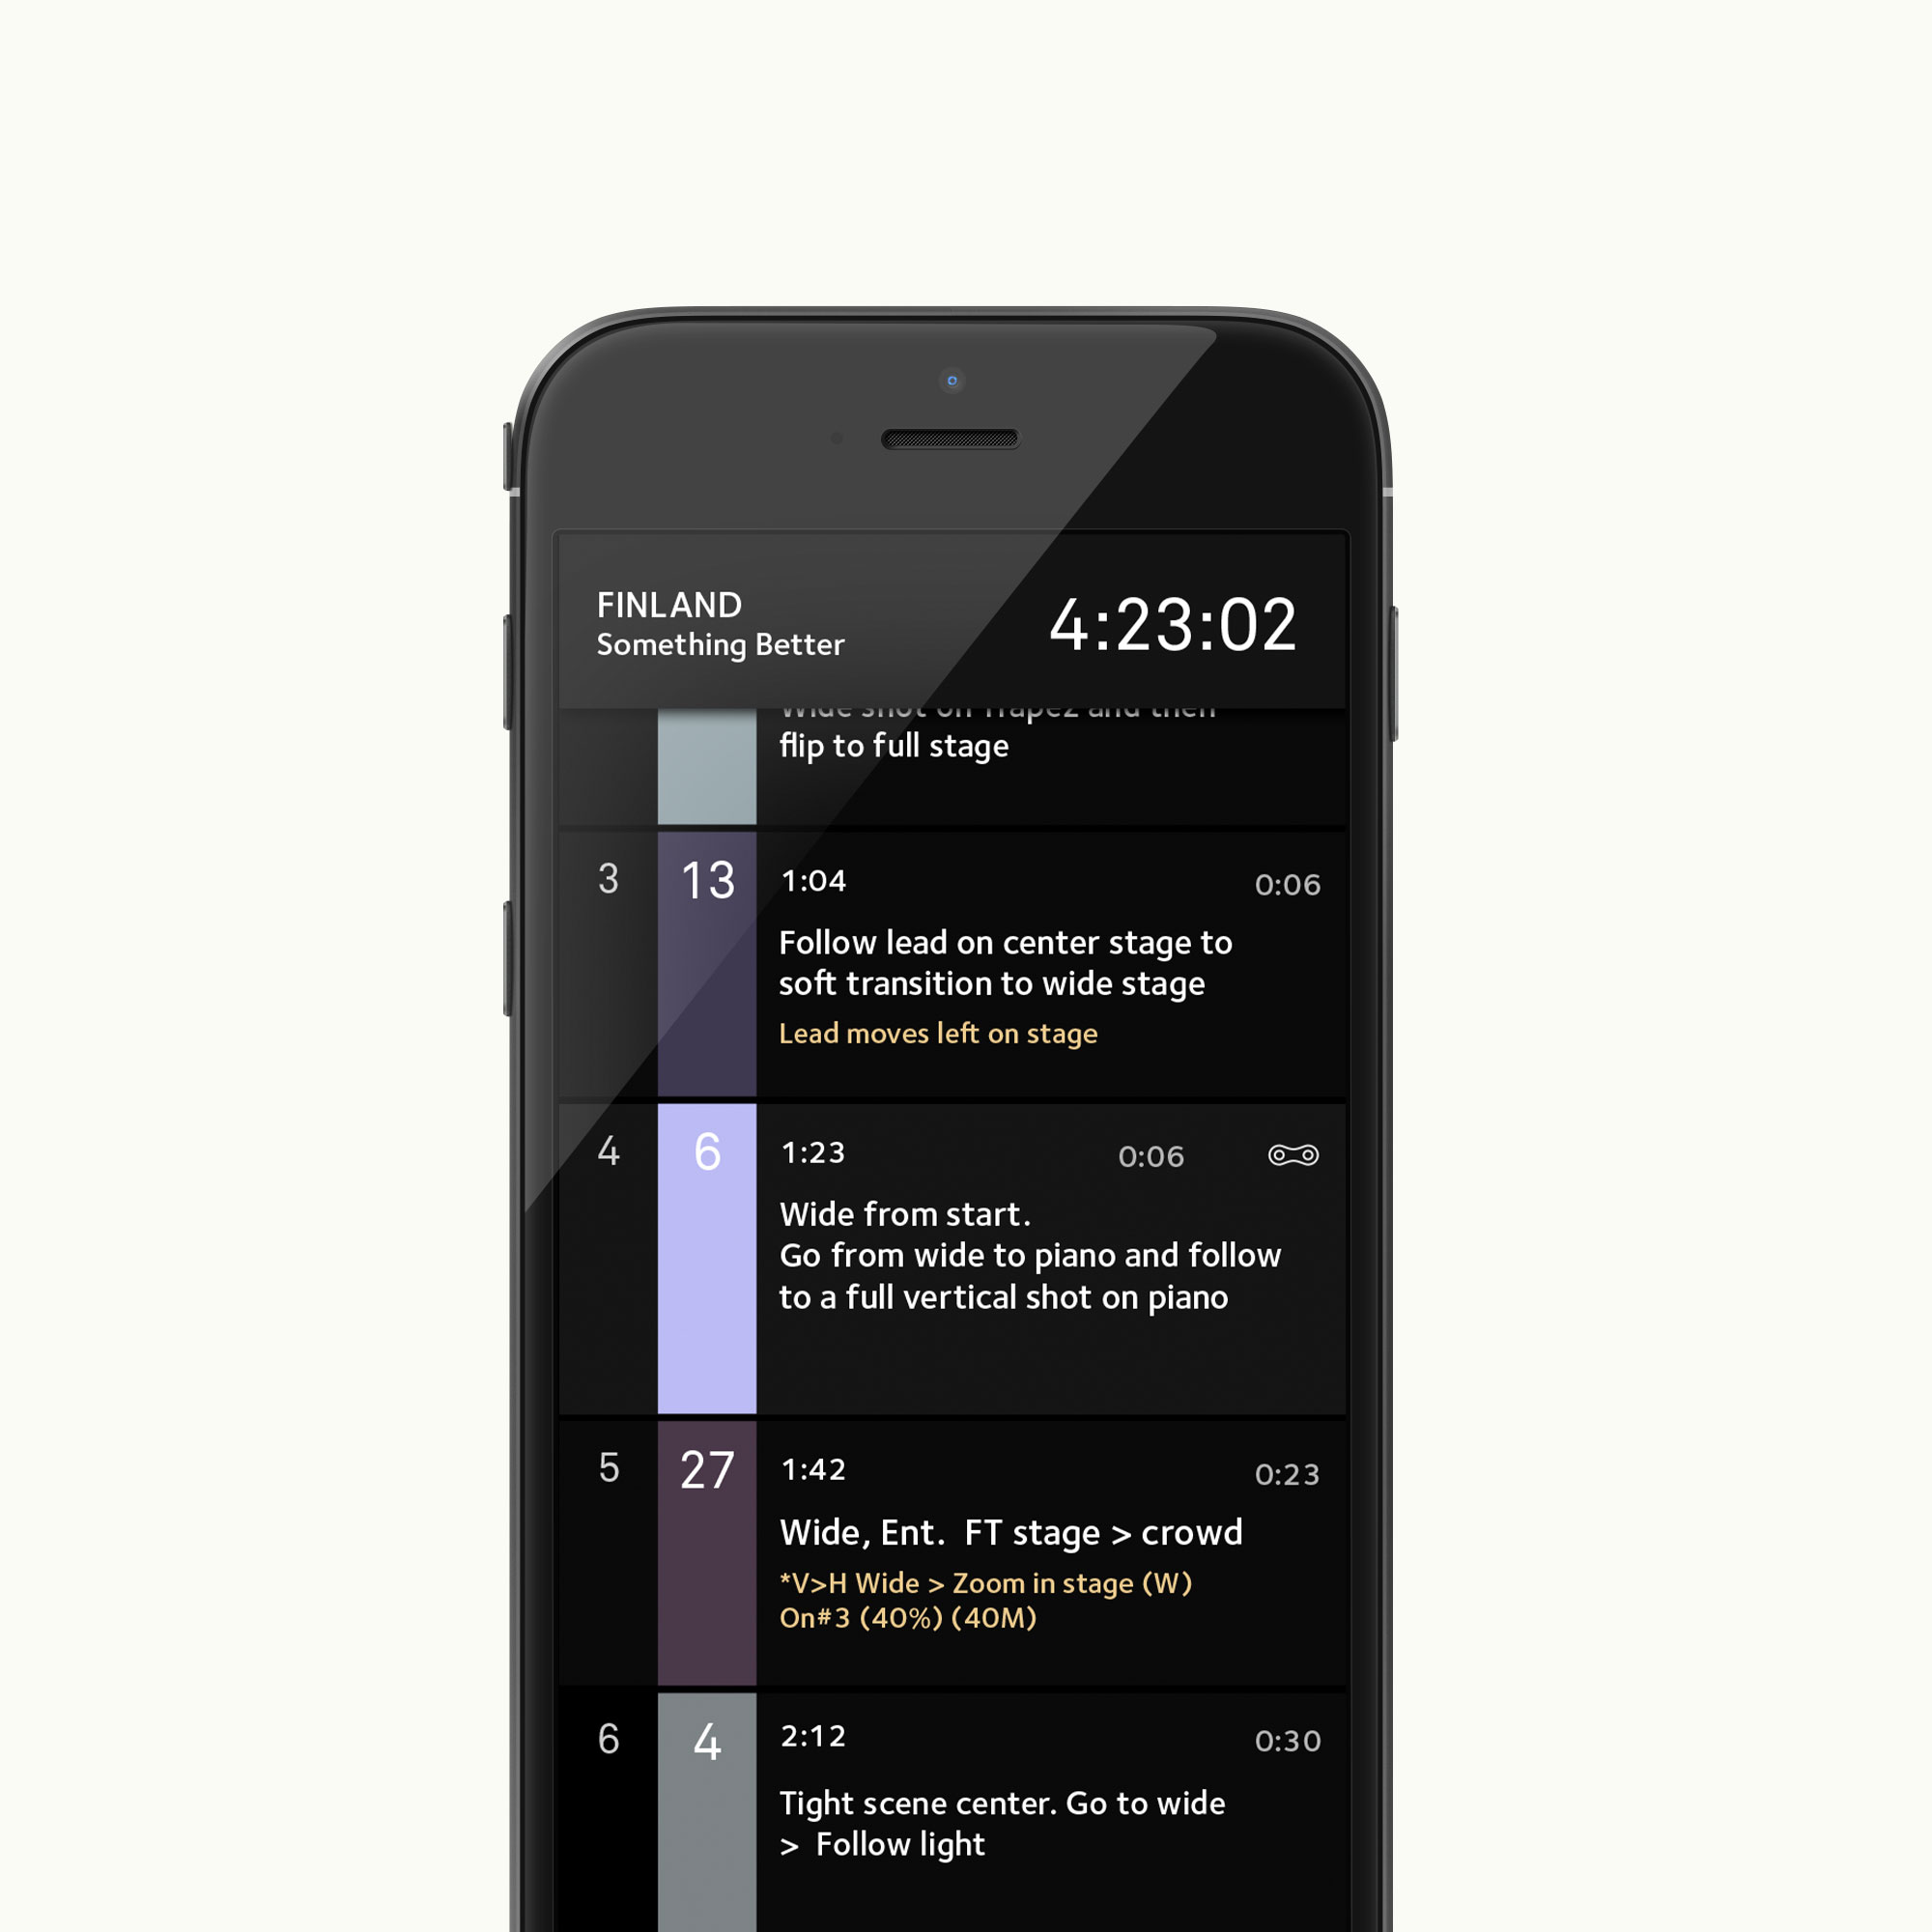 andreas_weiland_cuepilot_app_interface